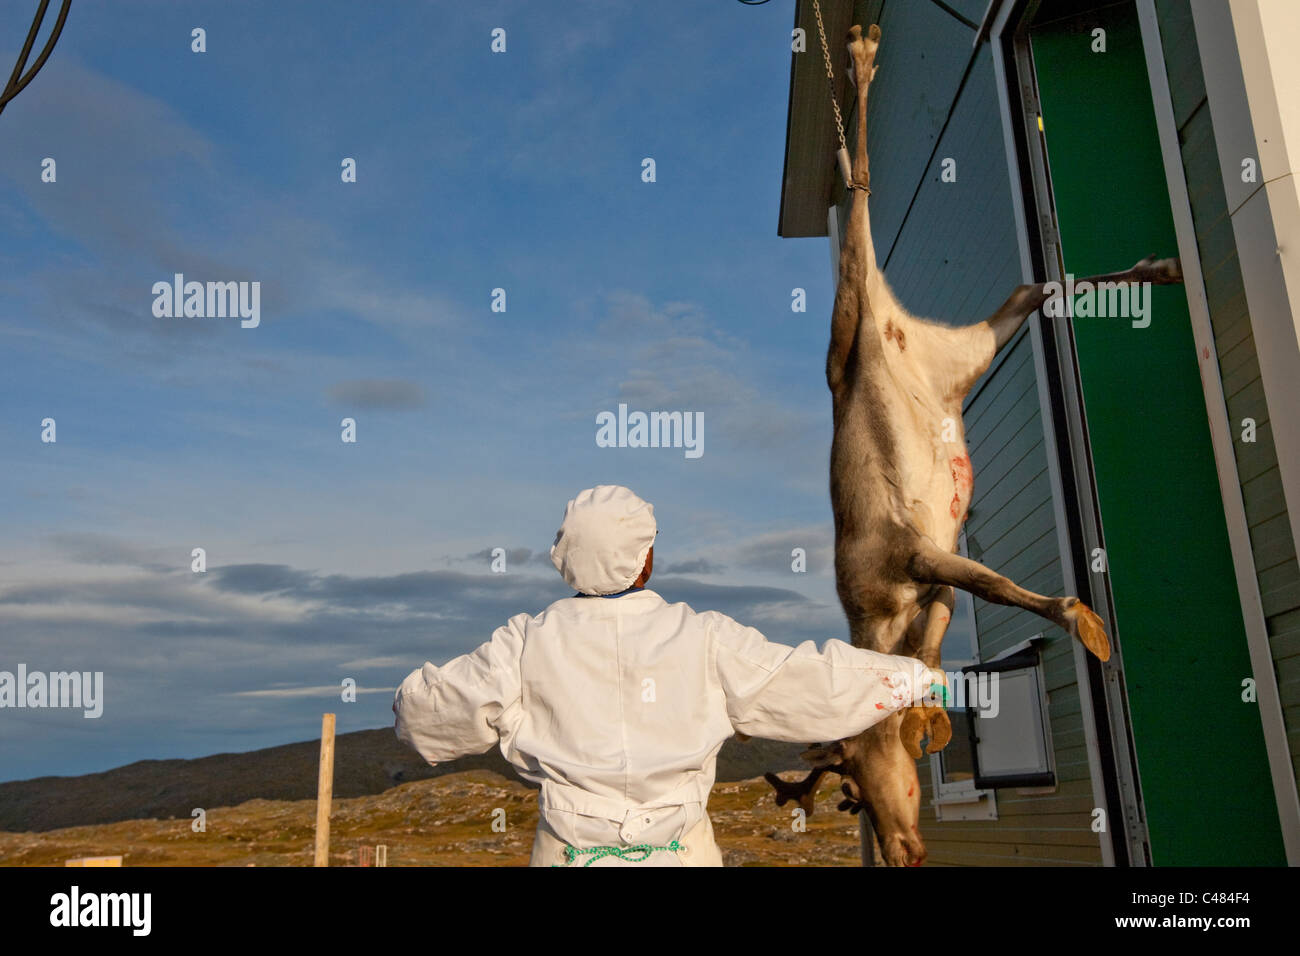 At a Reindeer farm at Isortoq, Greenland there was a roundup of about 200 reindeer to be slaughtered for their meat. - Stock Image